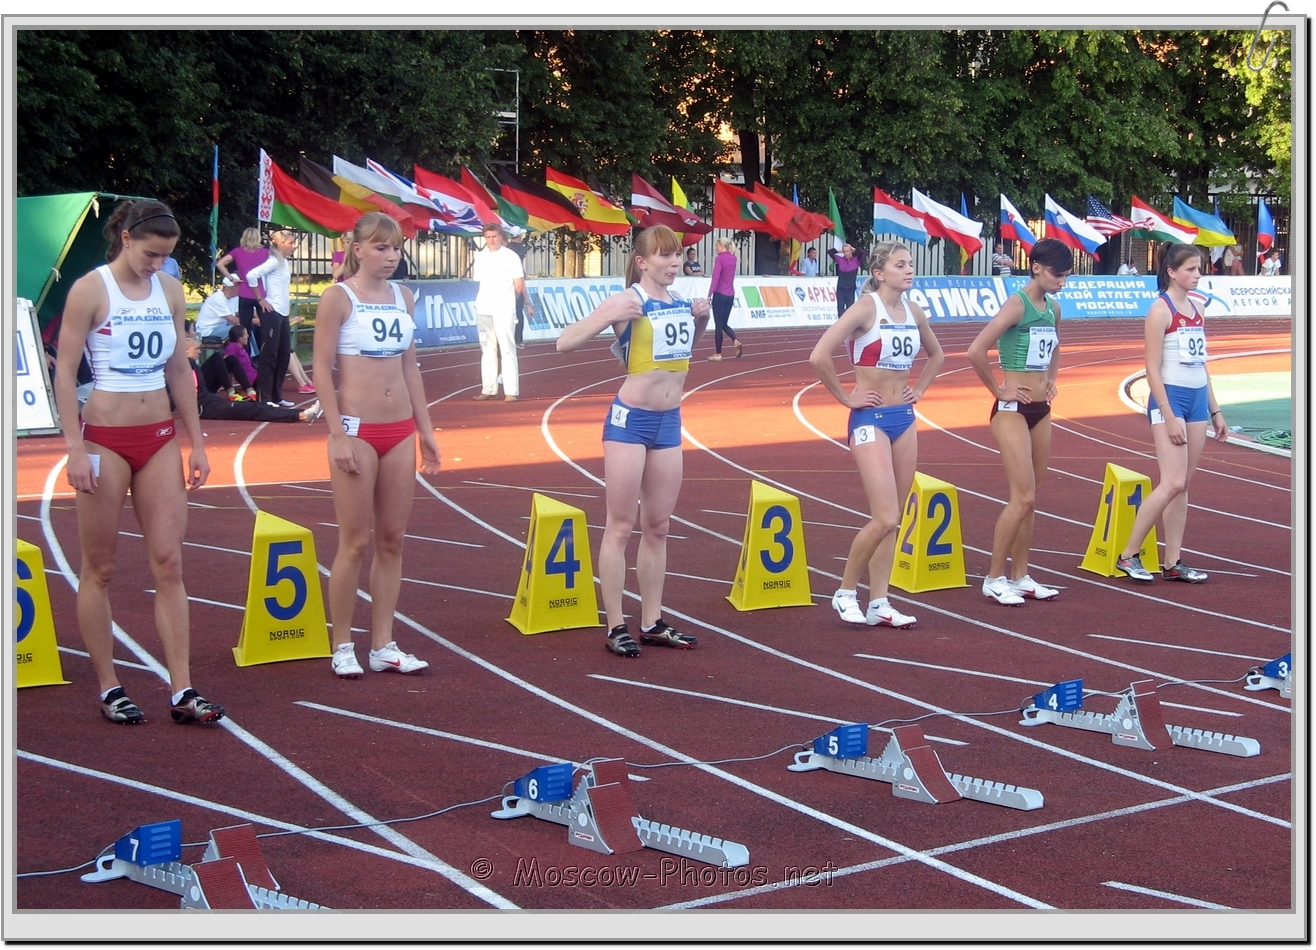 Start of the Race at Moscow Athletics Open 2010